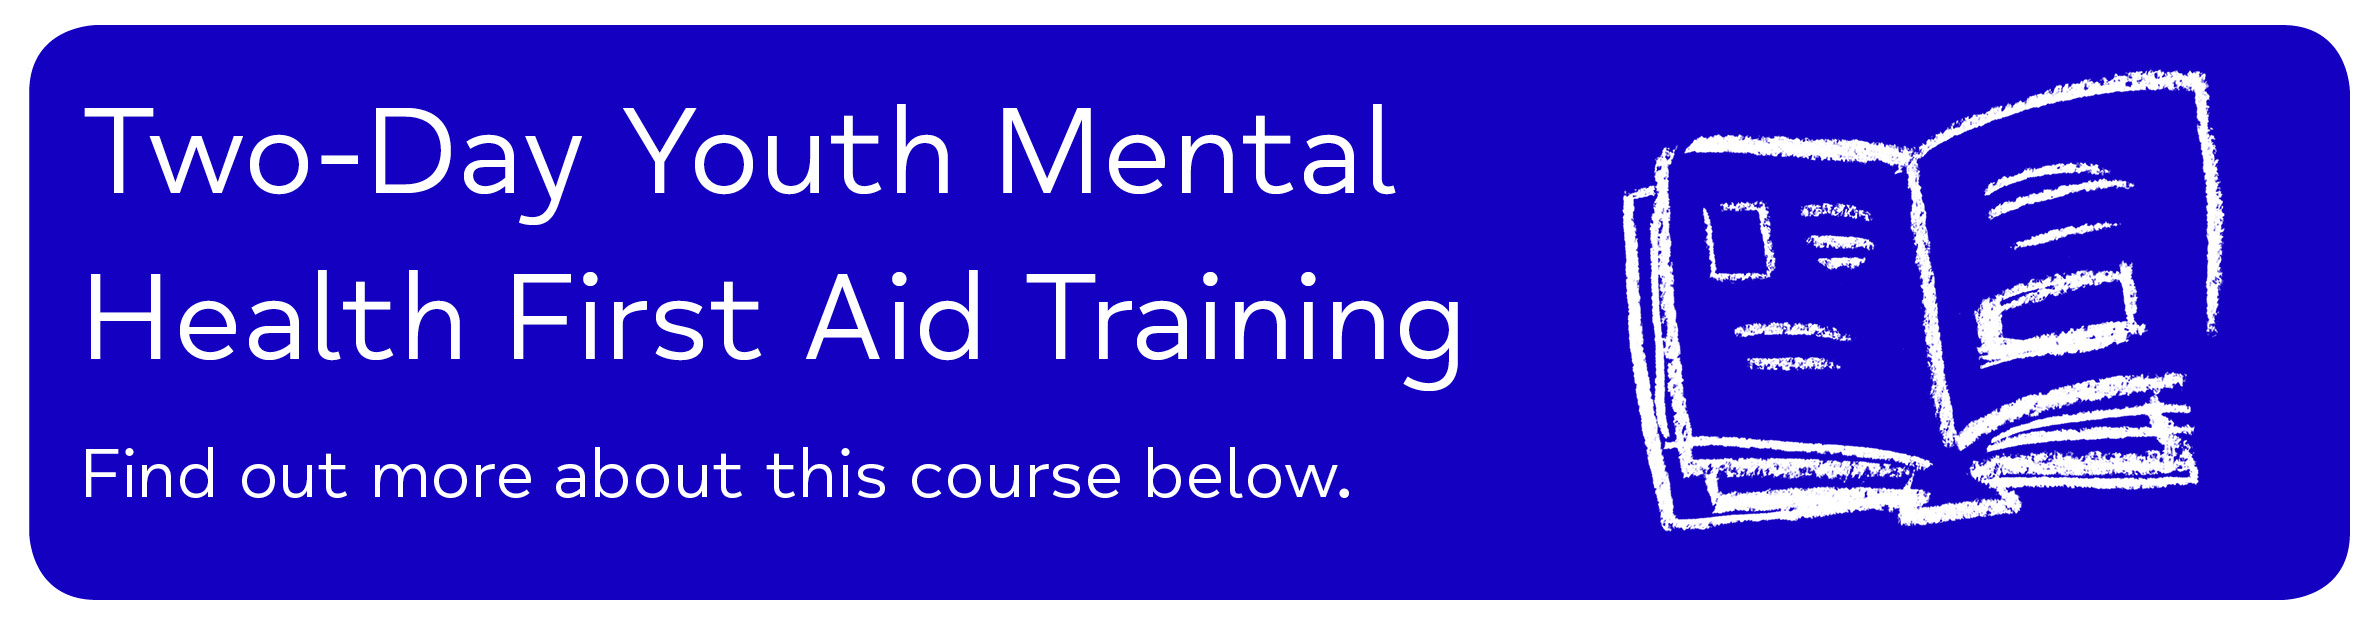 Two-Day Youth Mental Health First Aid - Two-Day Youth Mental Health First Aid Training Find out more about this course below.